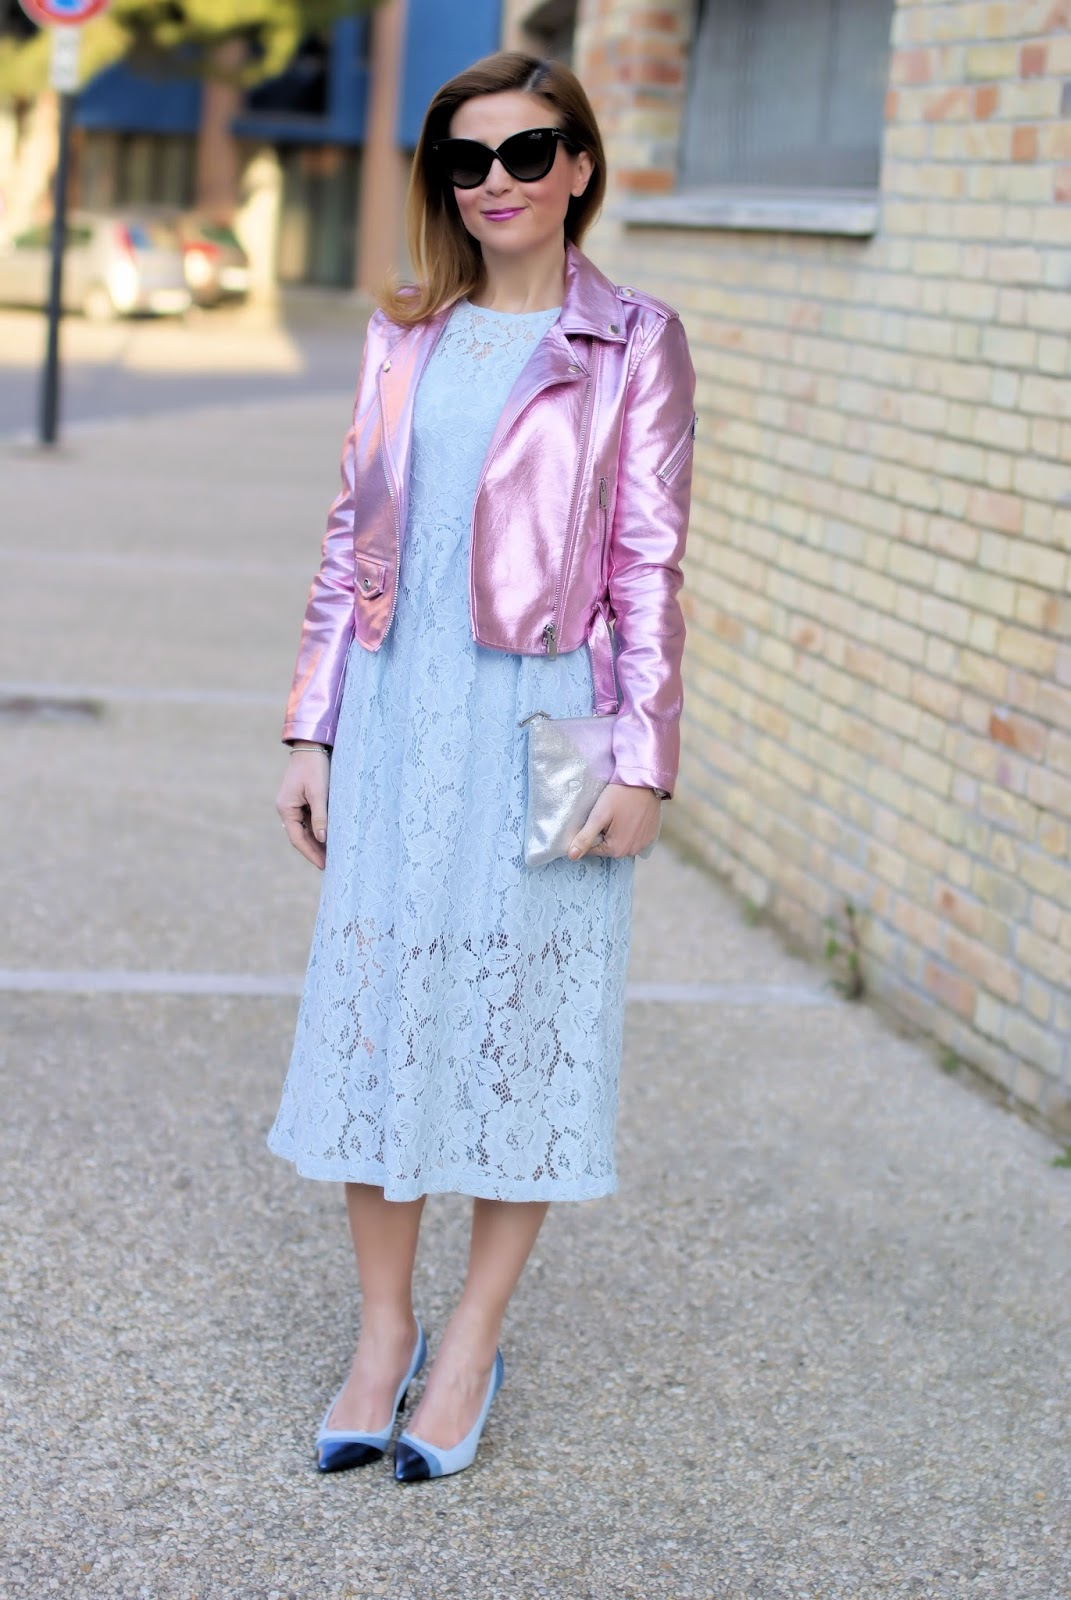 Lace dress and metallic pink motorbike jacket, SmartBuyGlasses Tom Ford sunglasses on Fashion and Cookies fashion blog, fashion blogger style